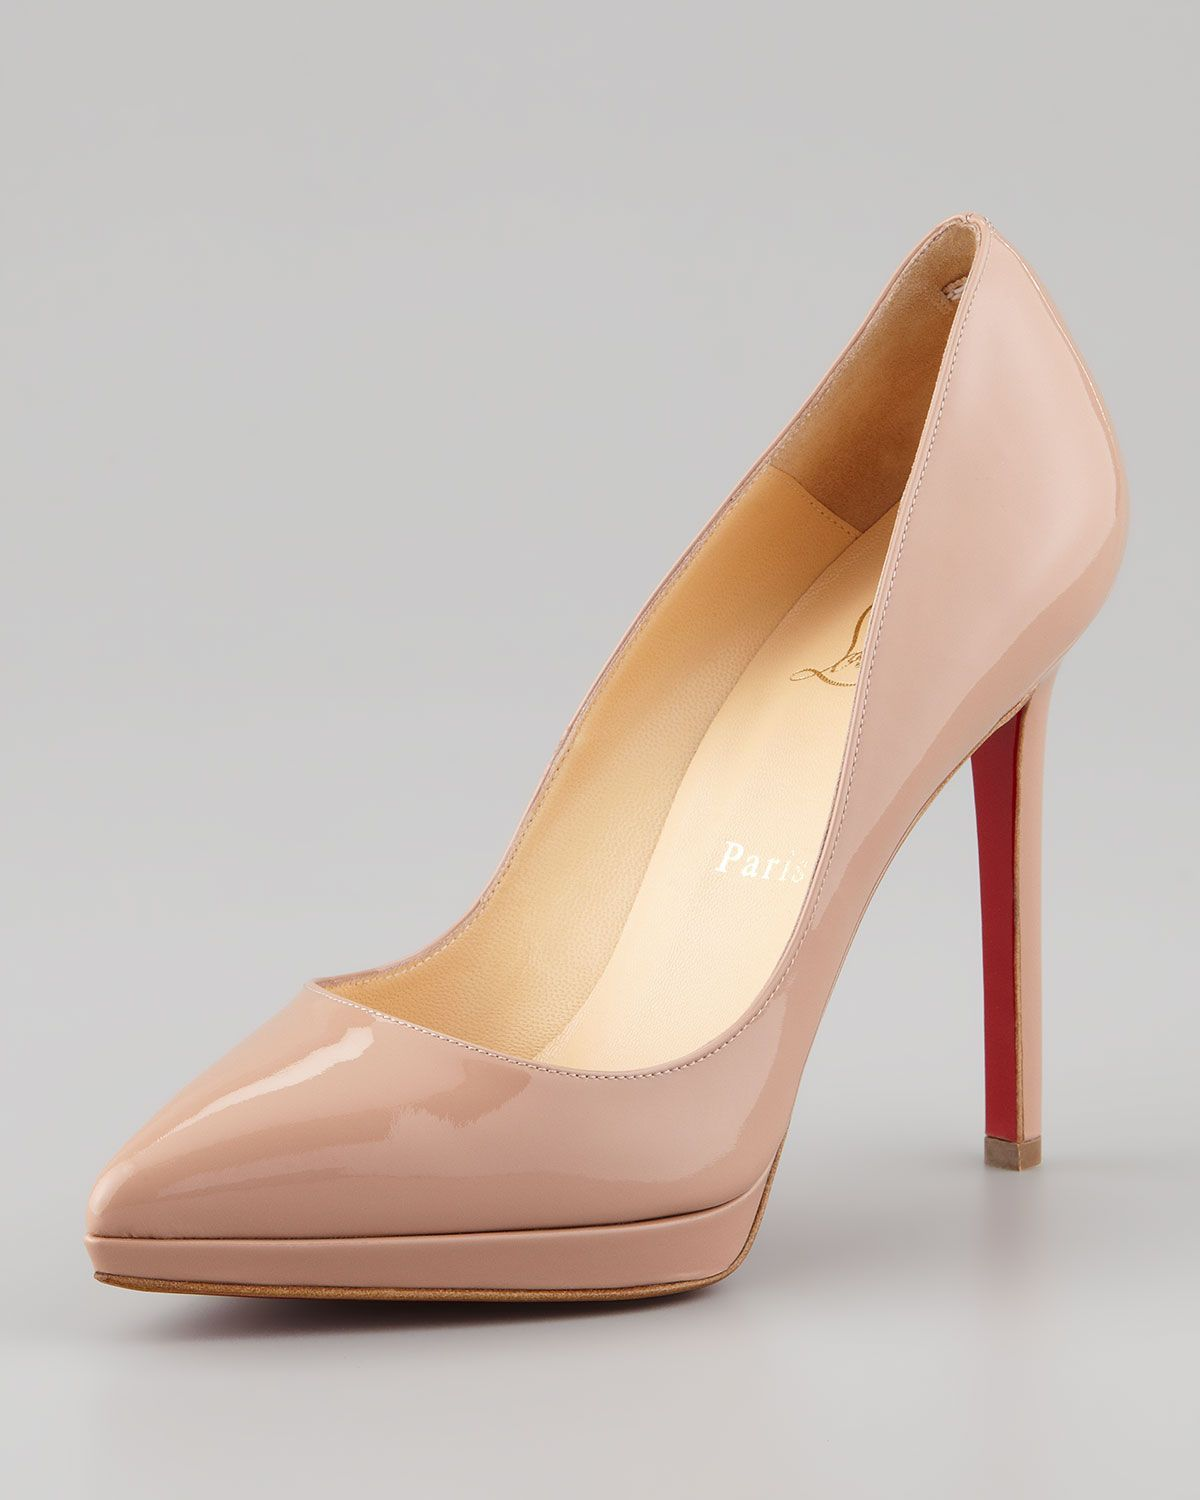 a2a996247b5 Next on my list! Christian Louboutin Pigalle Plato Patent Platform Red Sole  Pump